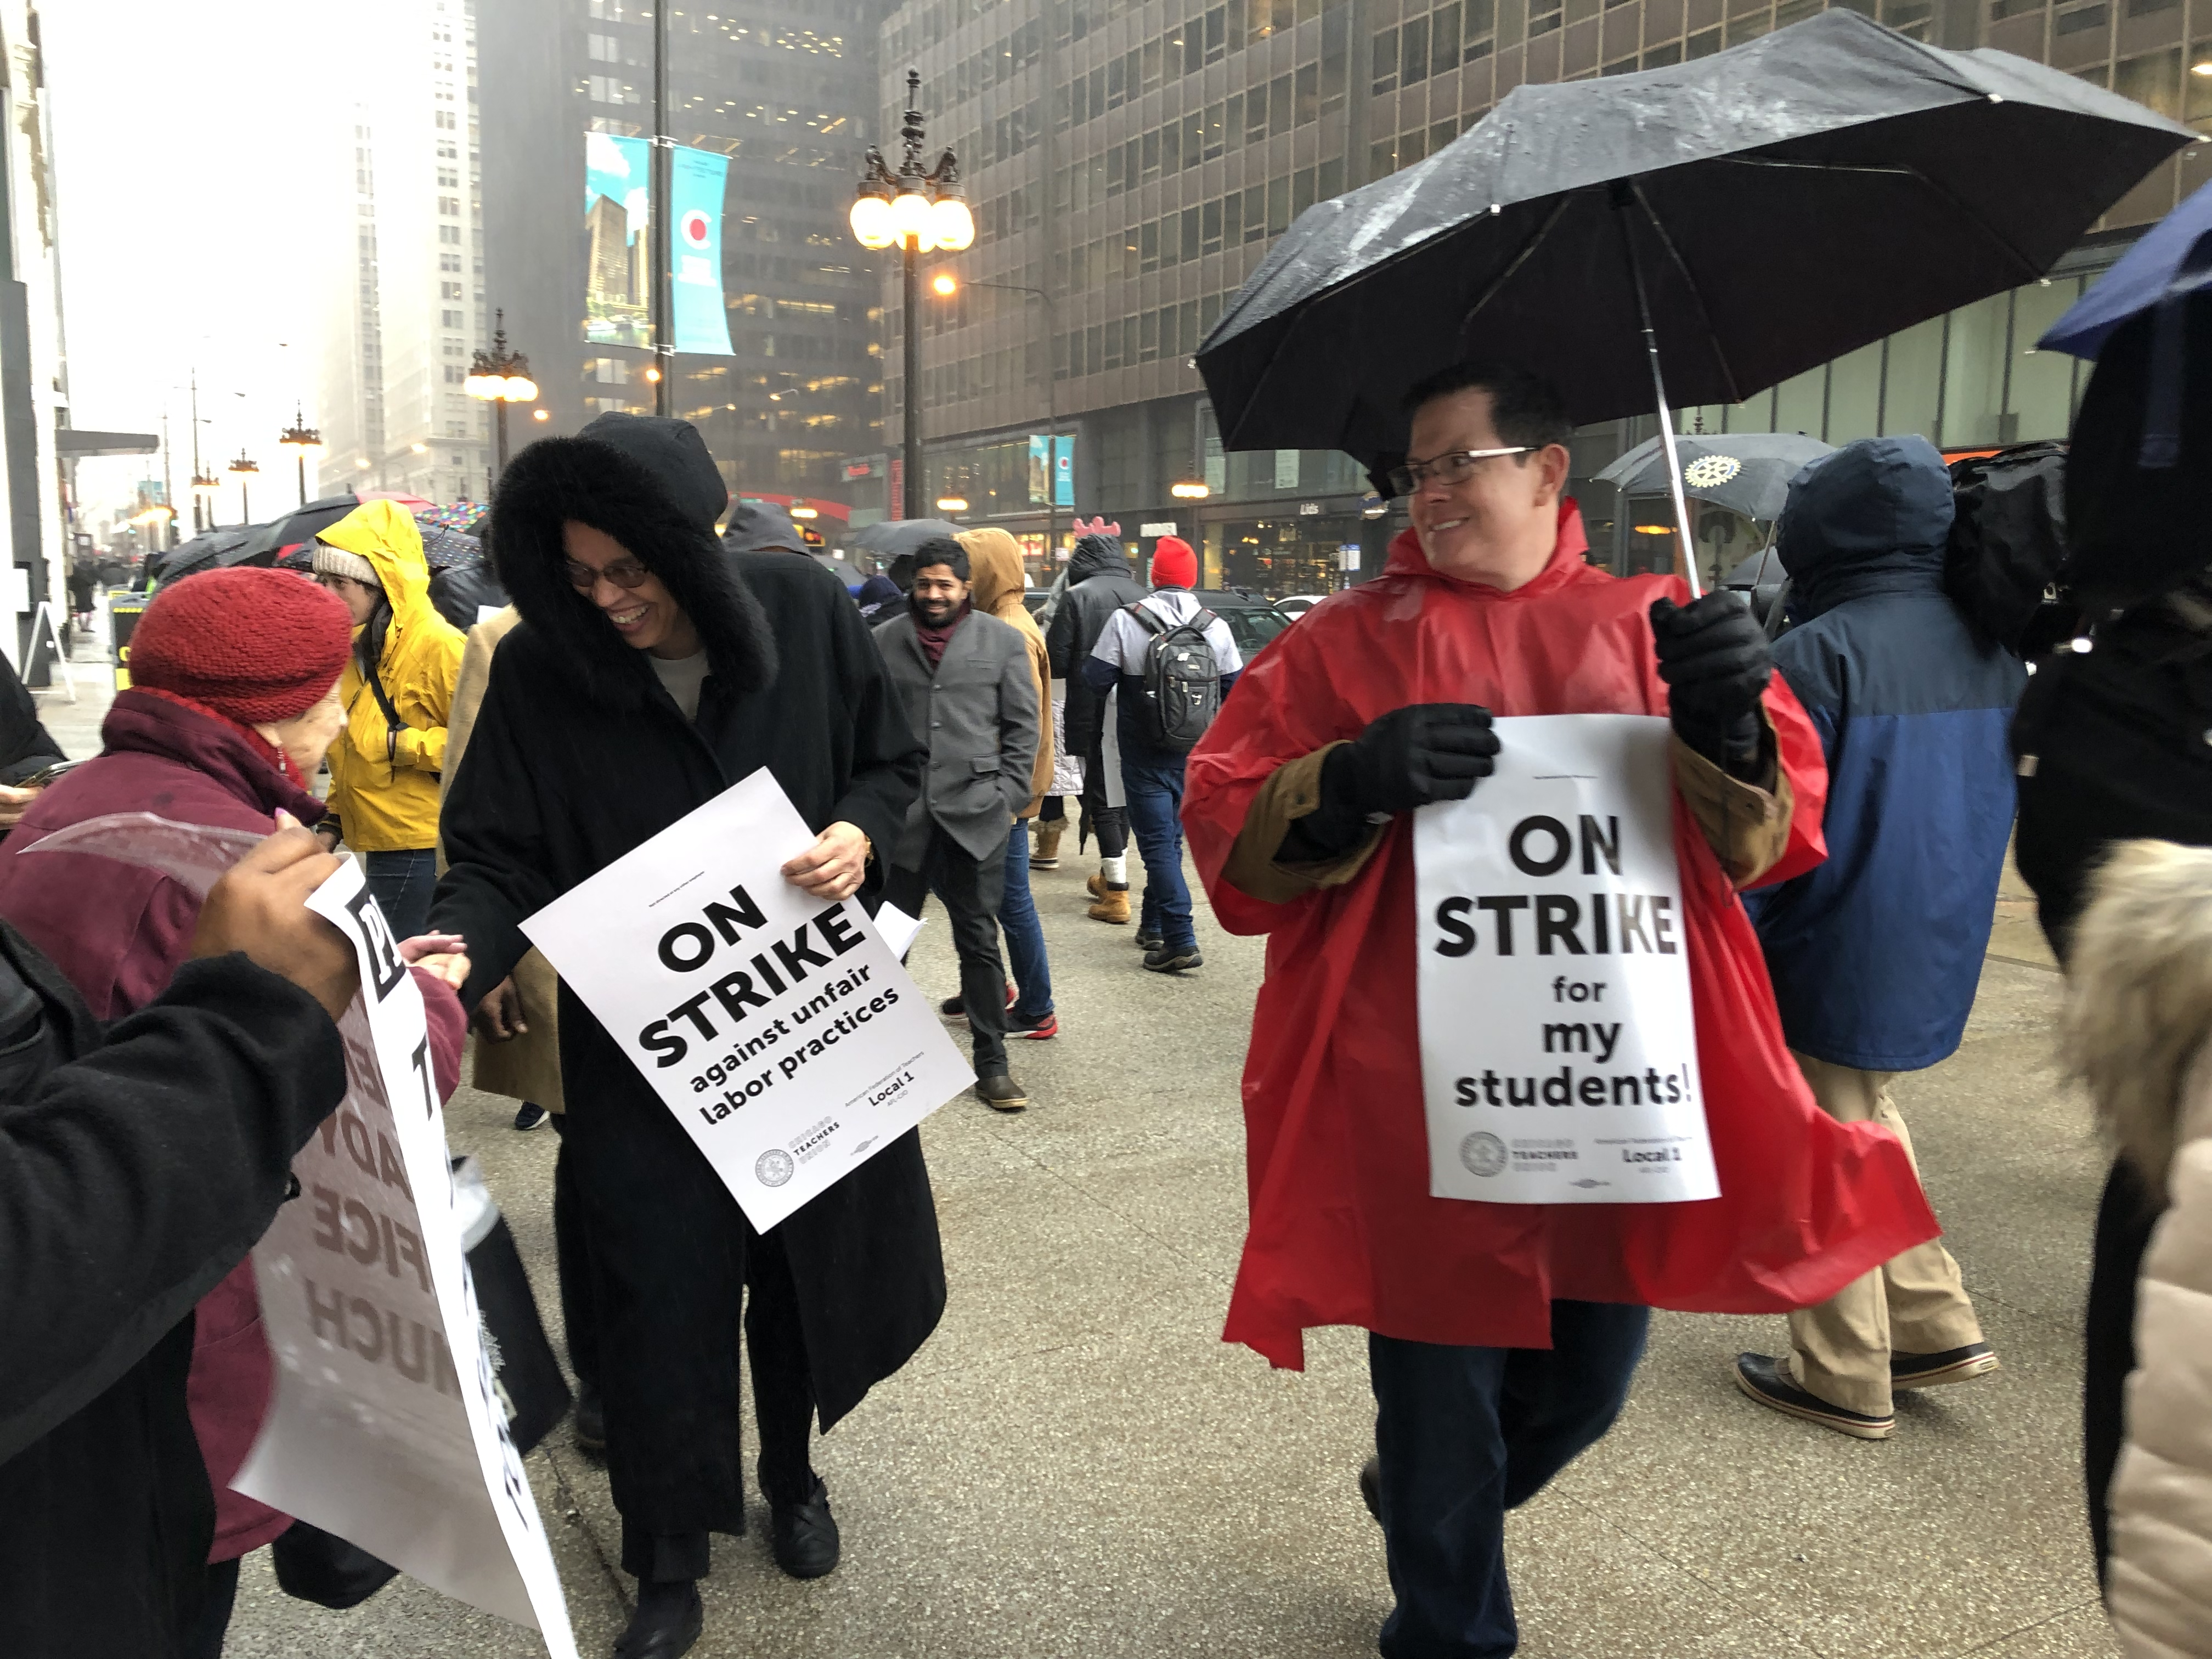 Chicago mayoral candidate Toni Preckwinkle, left, joined striking Chicago International Charter Schools teachers on a picket line at the Illinois Network of Charter Schools on Thursday, Feb. 7, 2019.